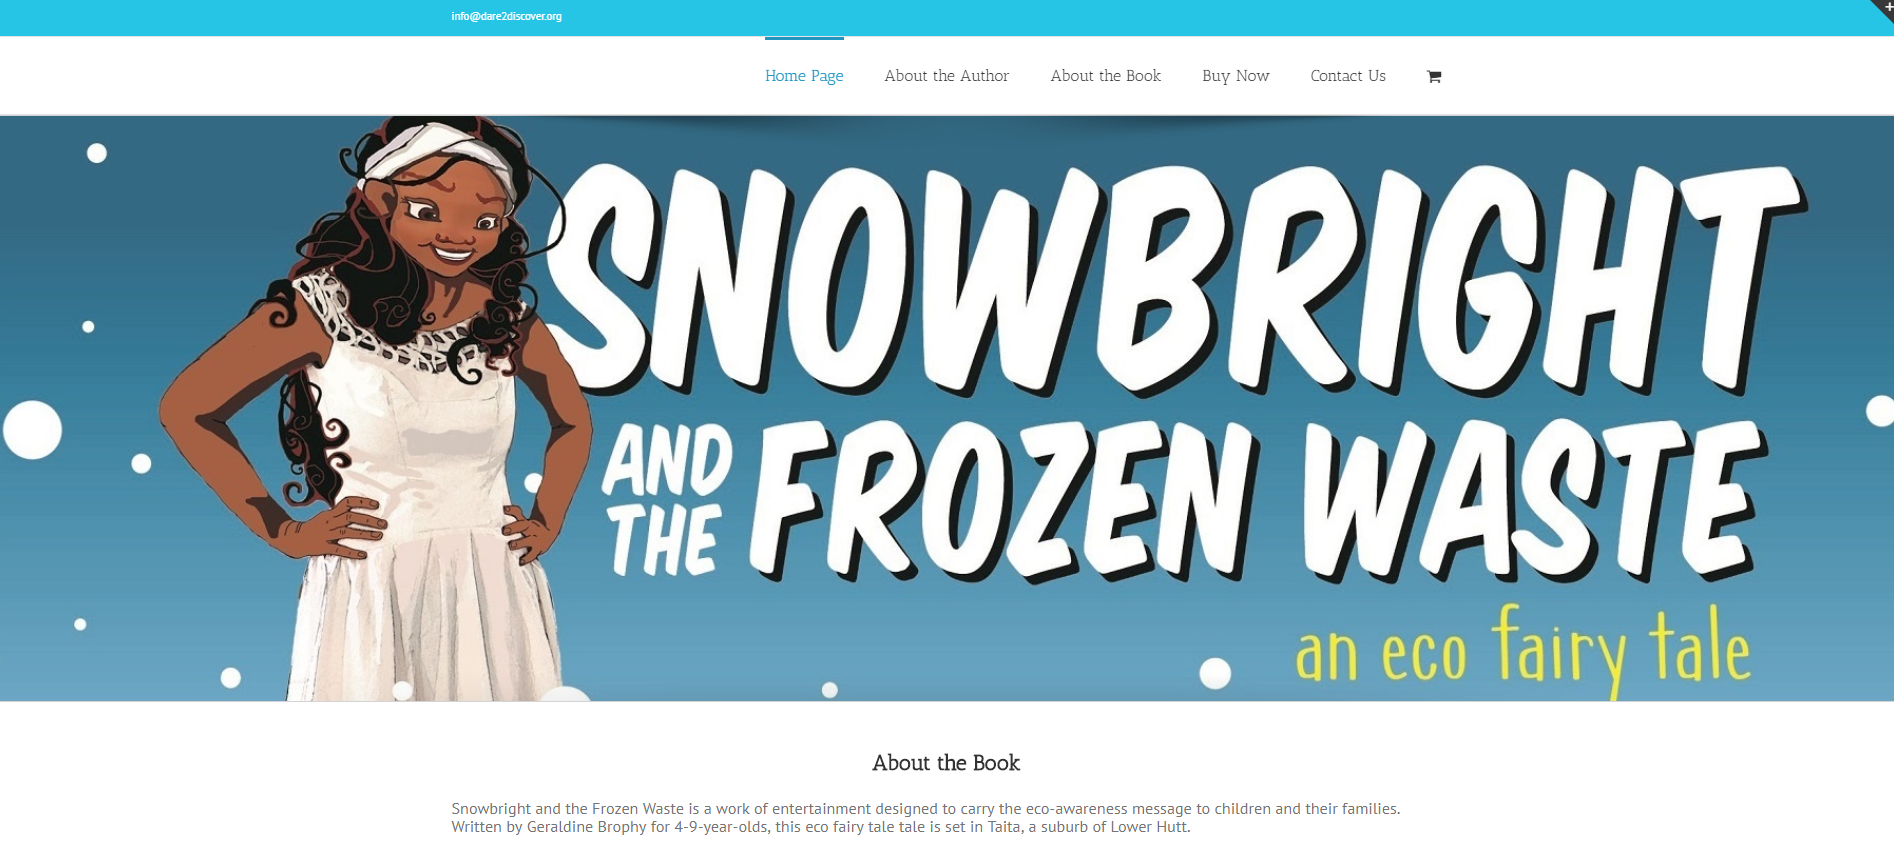 SnowBright and the Frozen Waste